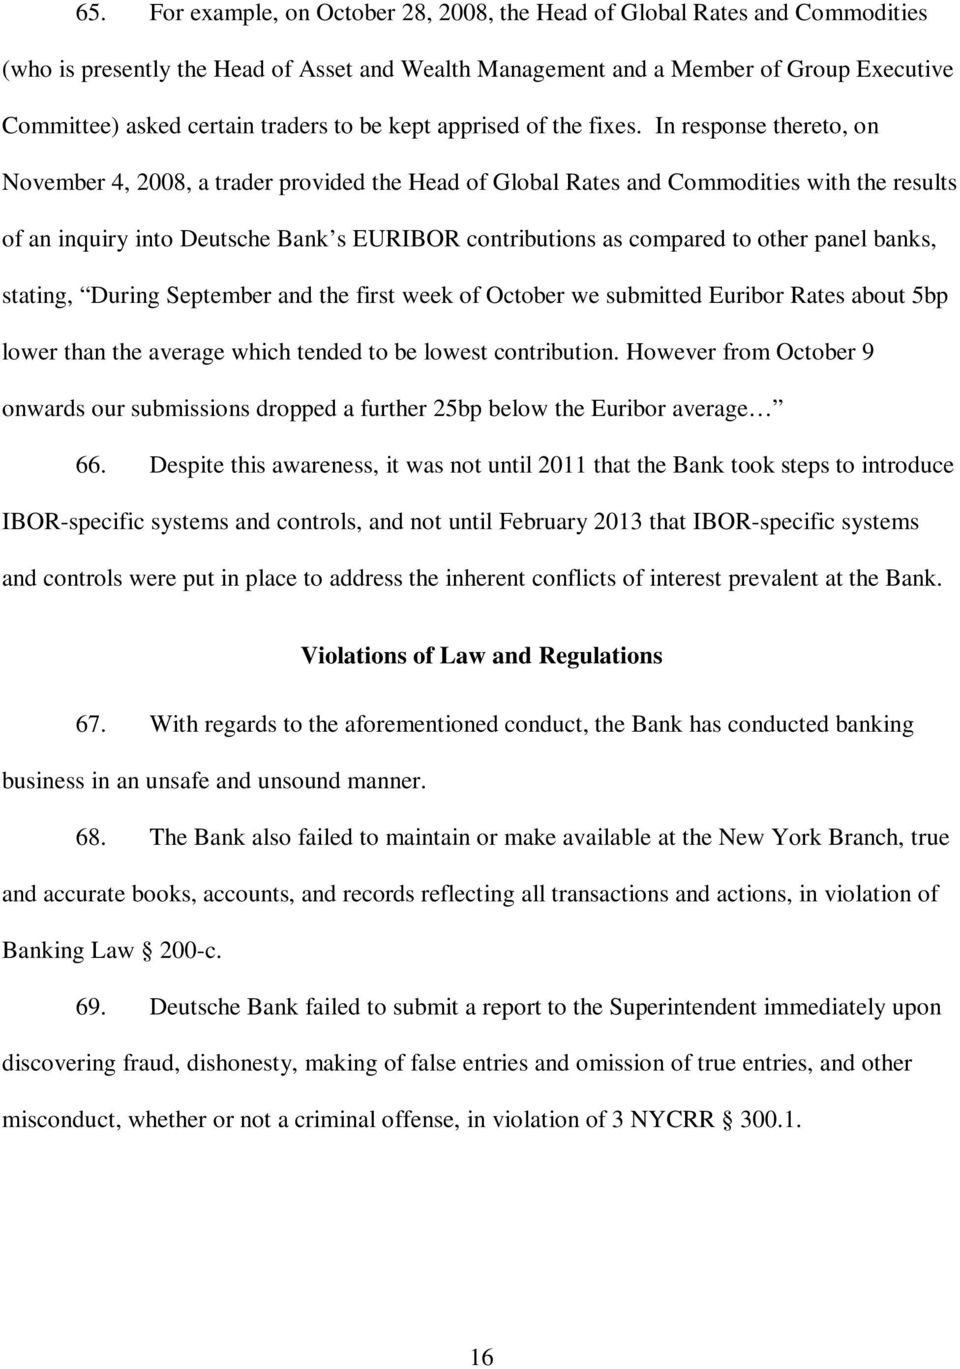 In response thereto, on November 4, 2008, a trader provided the Head of Global Rates and Commodities with the results of an inquiry into Deutsche Bank s EURIBOR contributions as compared to other